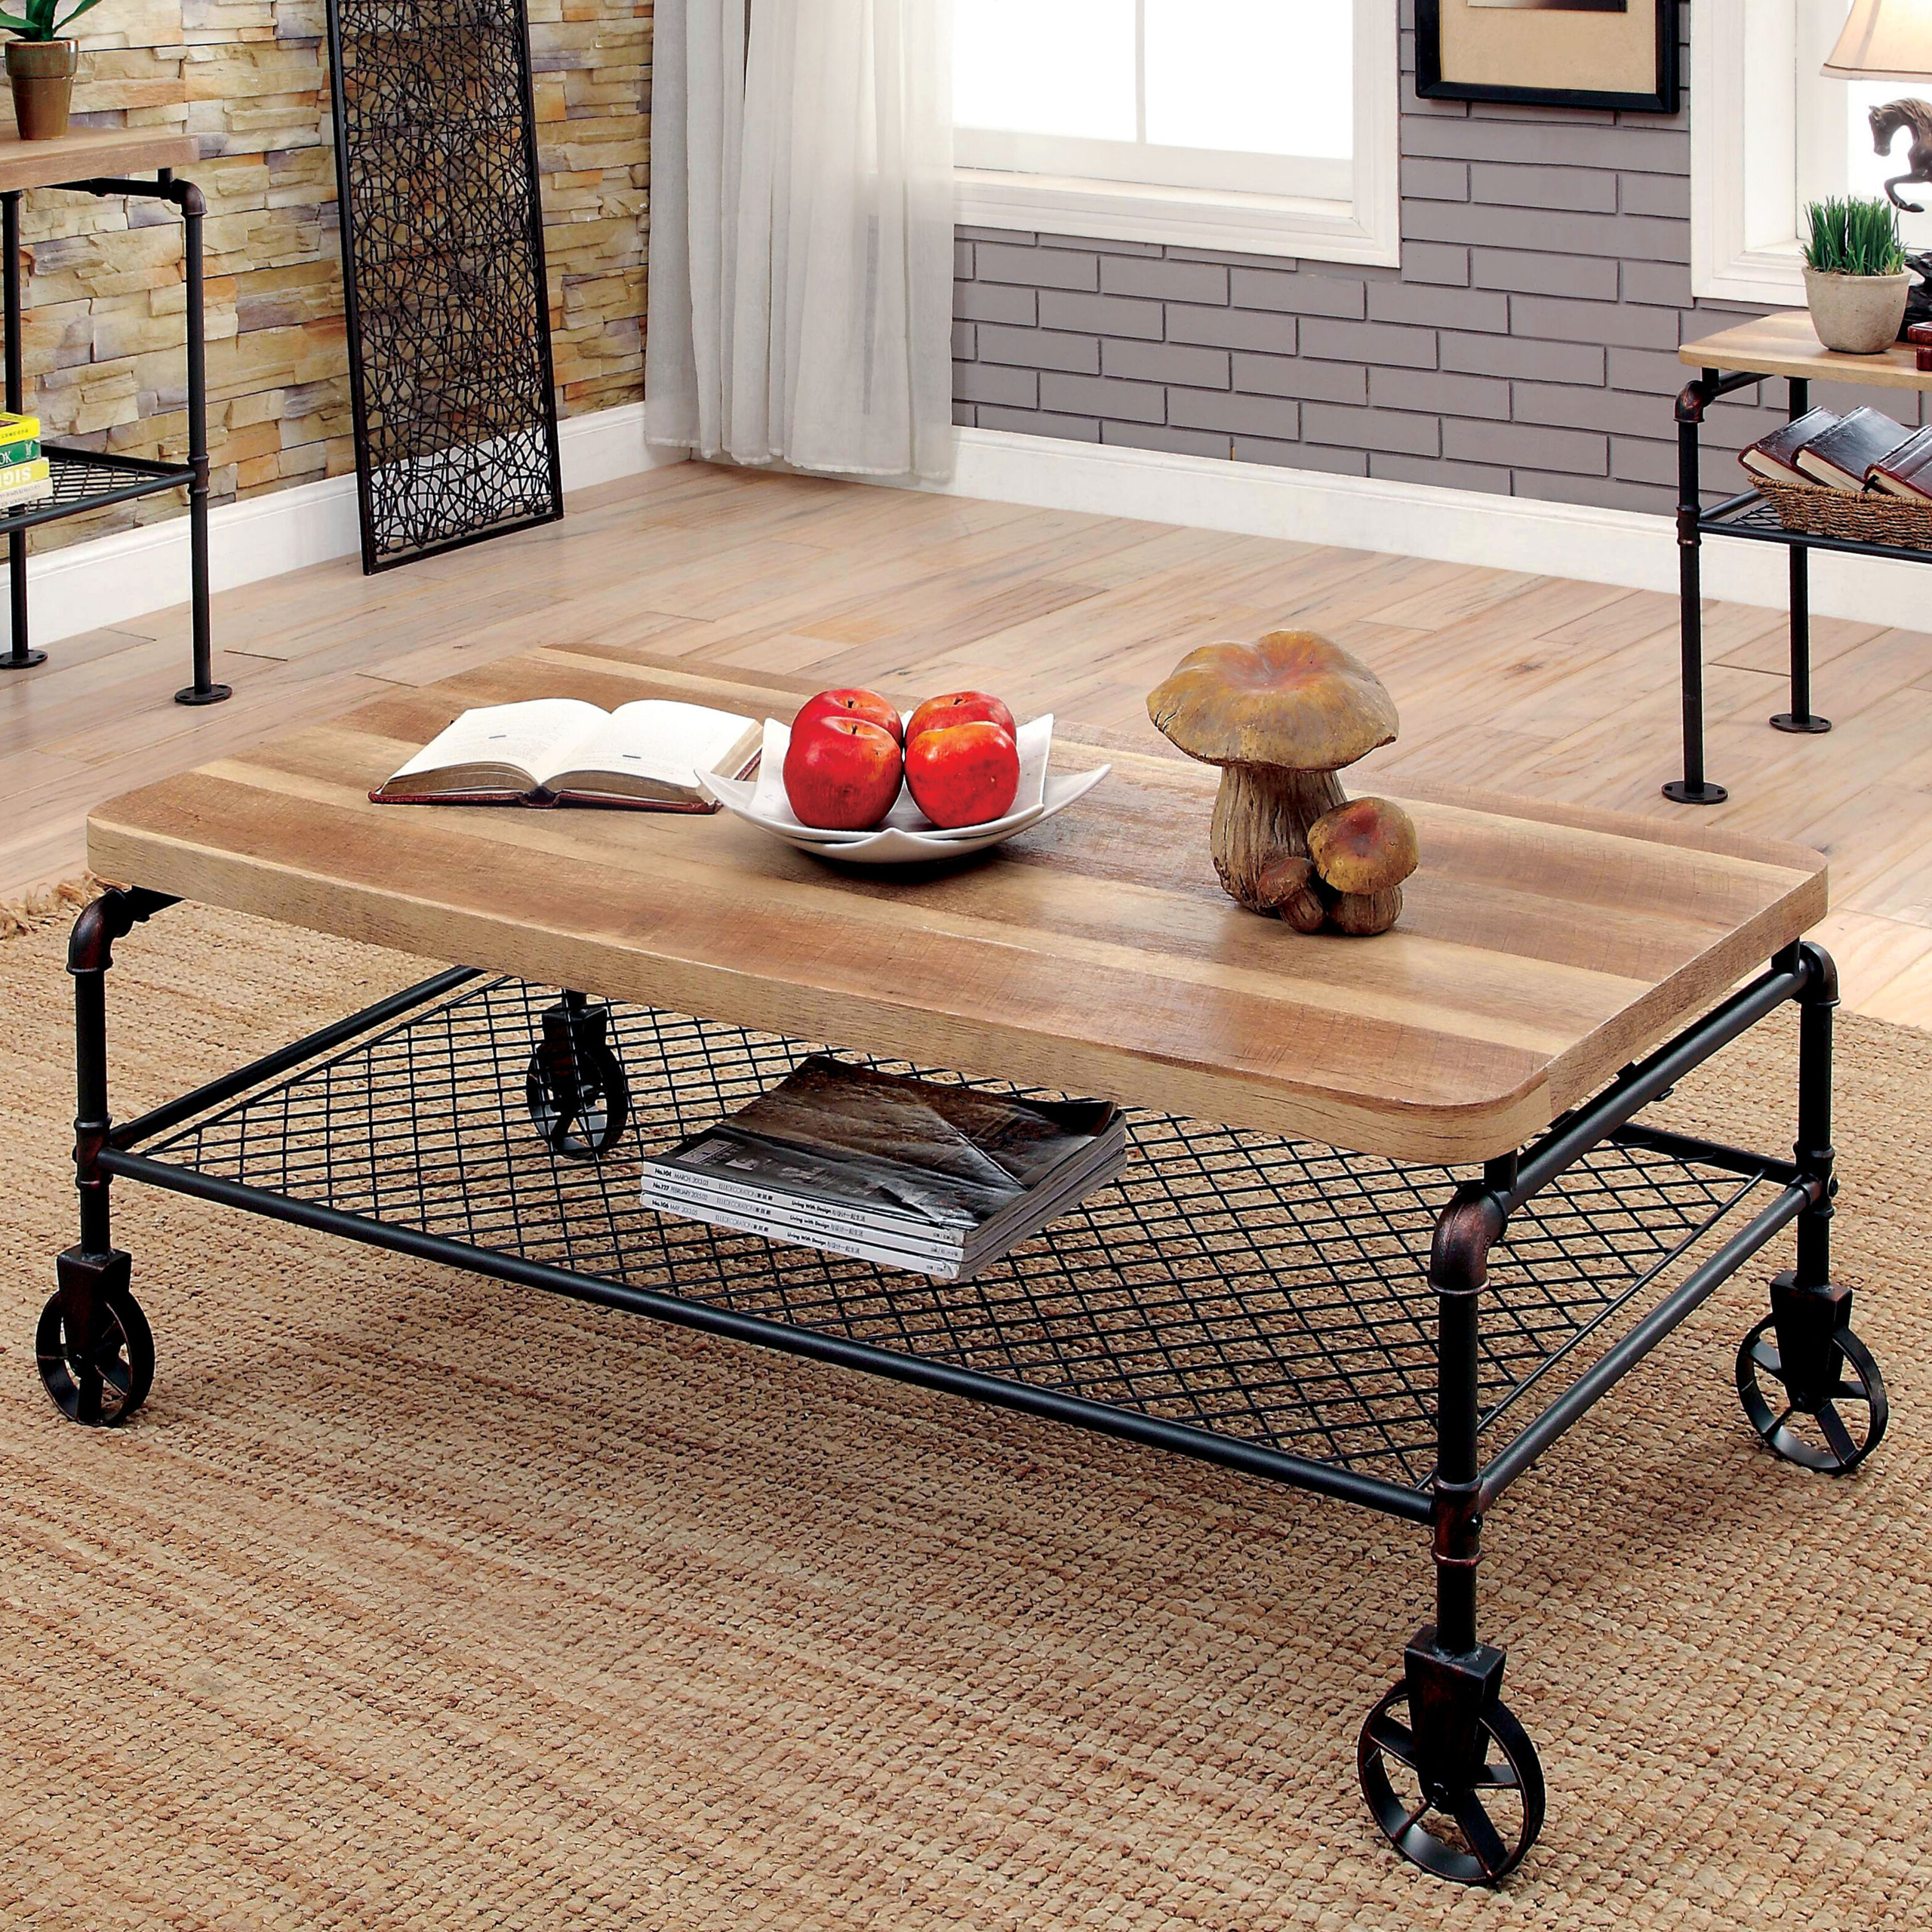 Industrial Coffee Table With Wheels Ideas On Foter